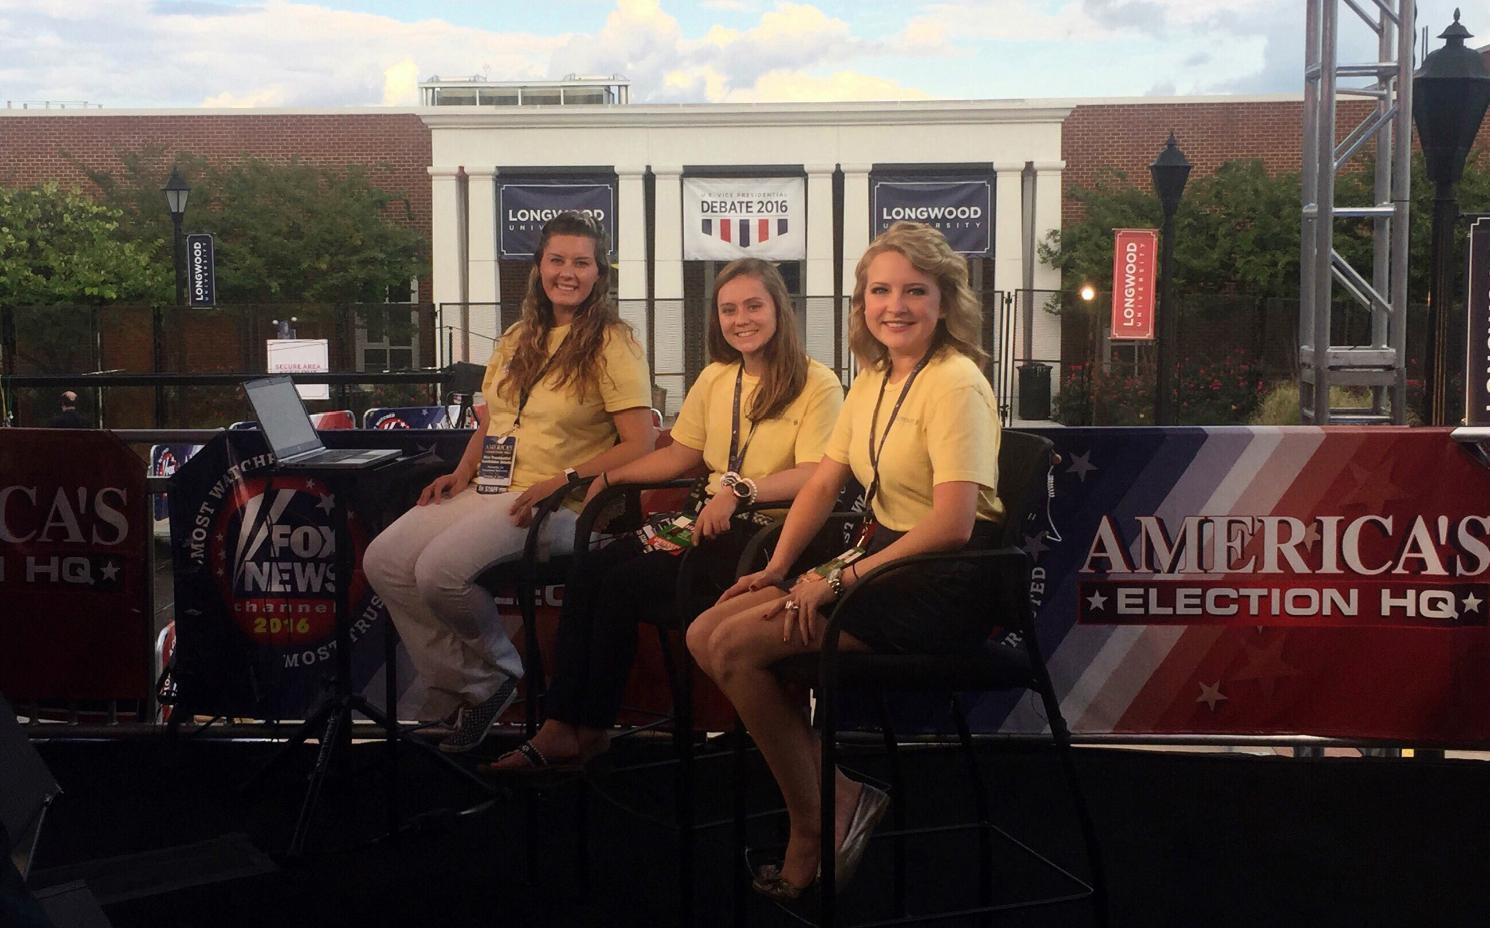 Ryan Carey (left) and Allyson Stone (right) volunteered with Fox News during the 2016 Vice Presidential Debate at Longwood. The pair will work with Fox again during this February's Super Bowl in Houston.